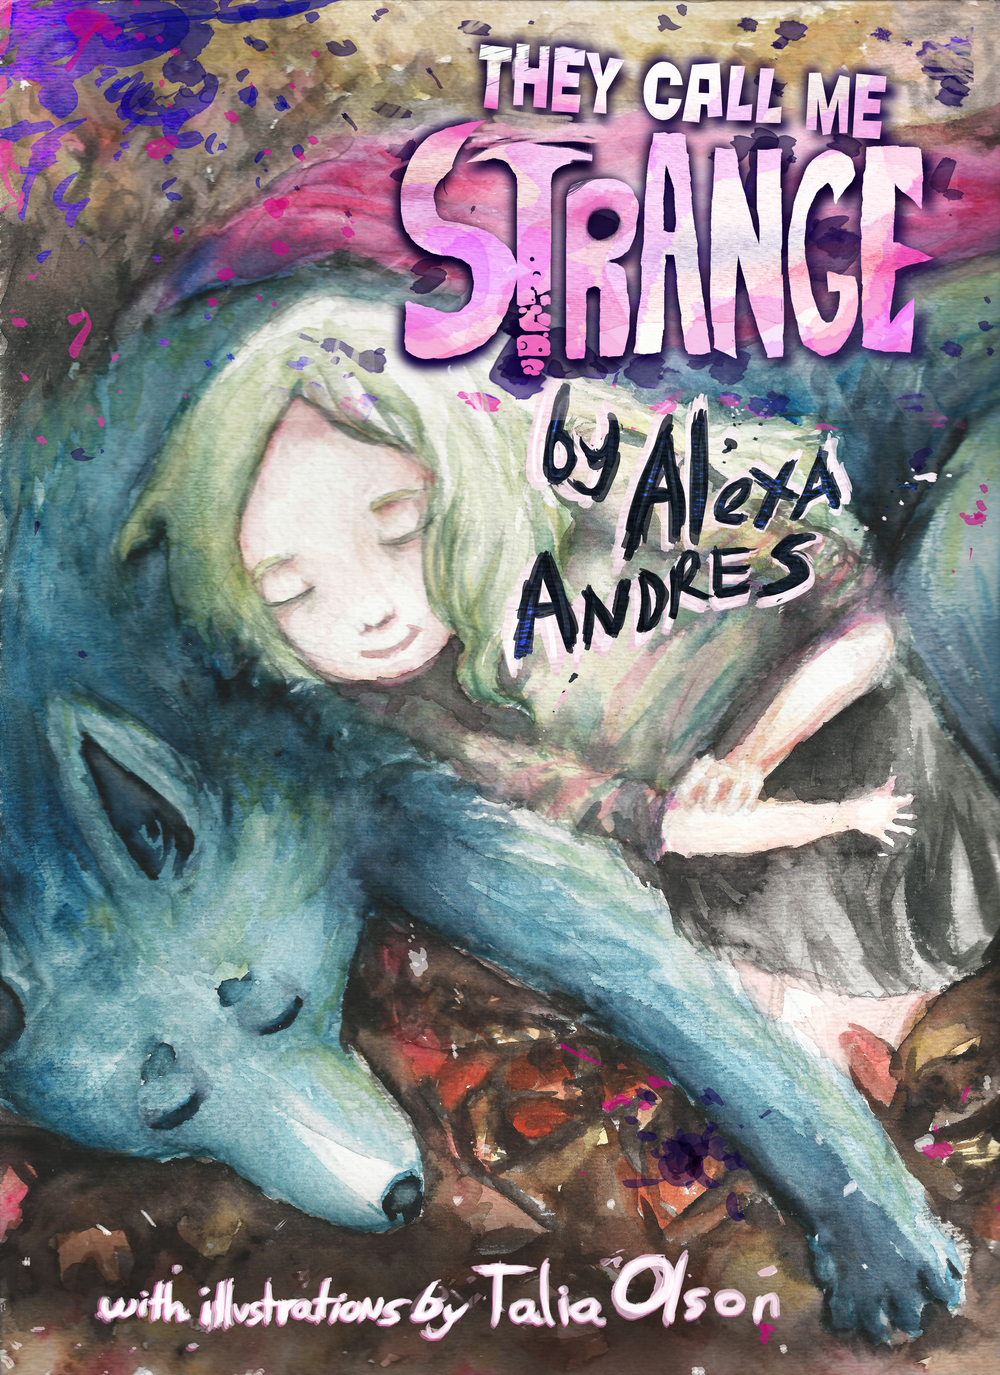 They Call Me Strange 01 Cover Final.jpg